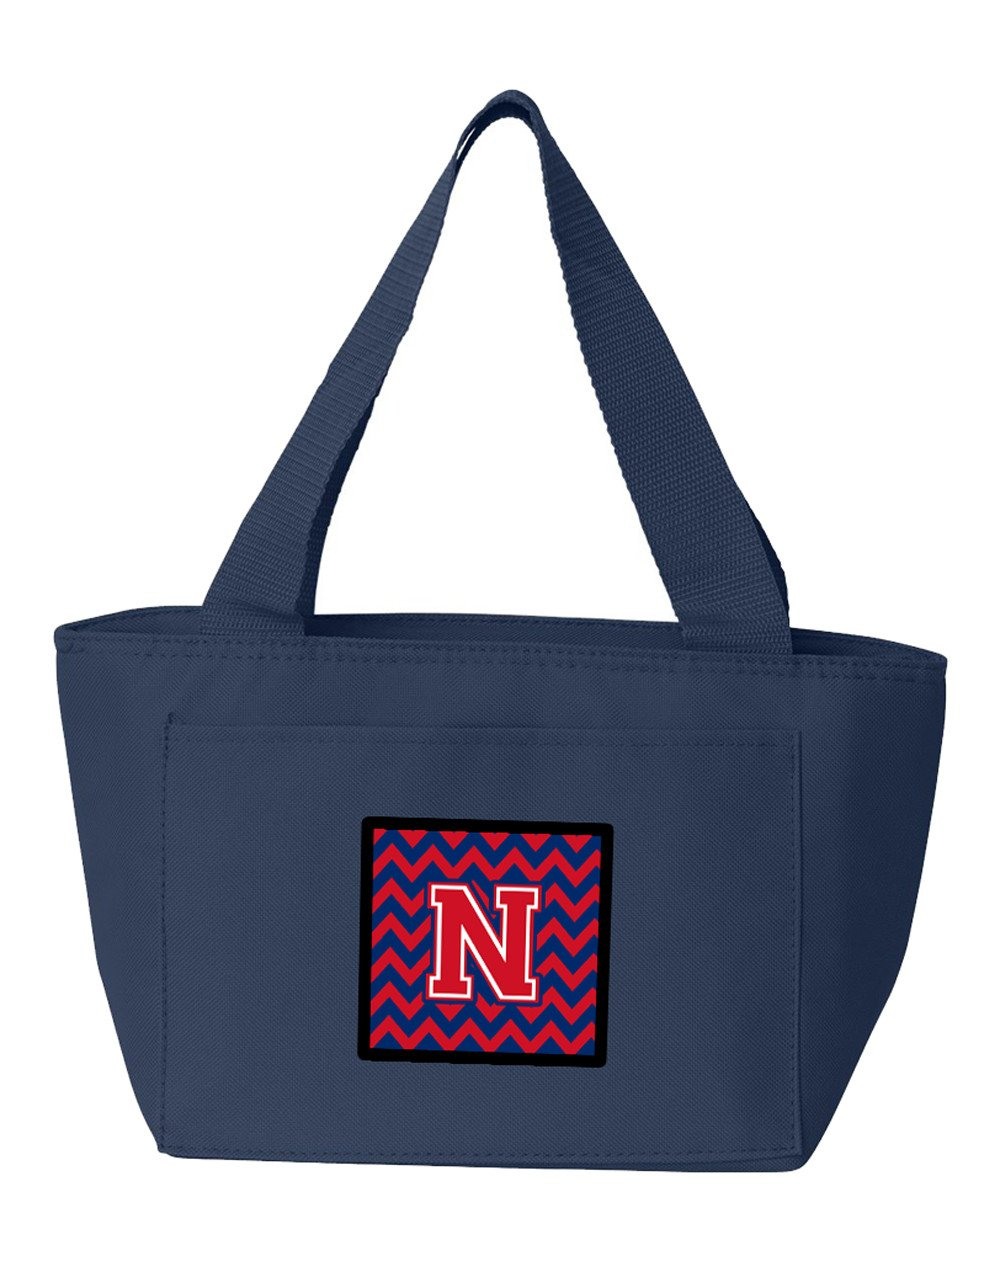 Letter N Chevron Yale Blue and Crimson Lunch Bag CJ1054-NNA-8808 by Caroline's Treasures